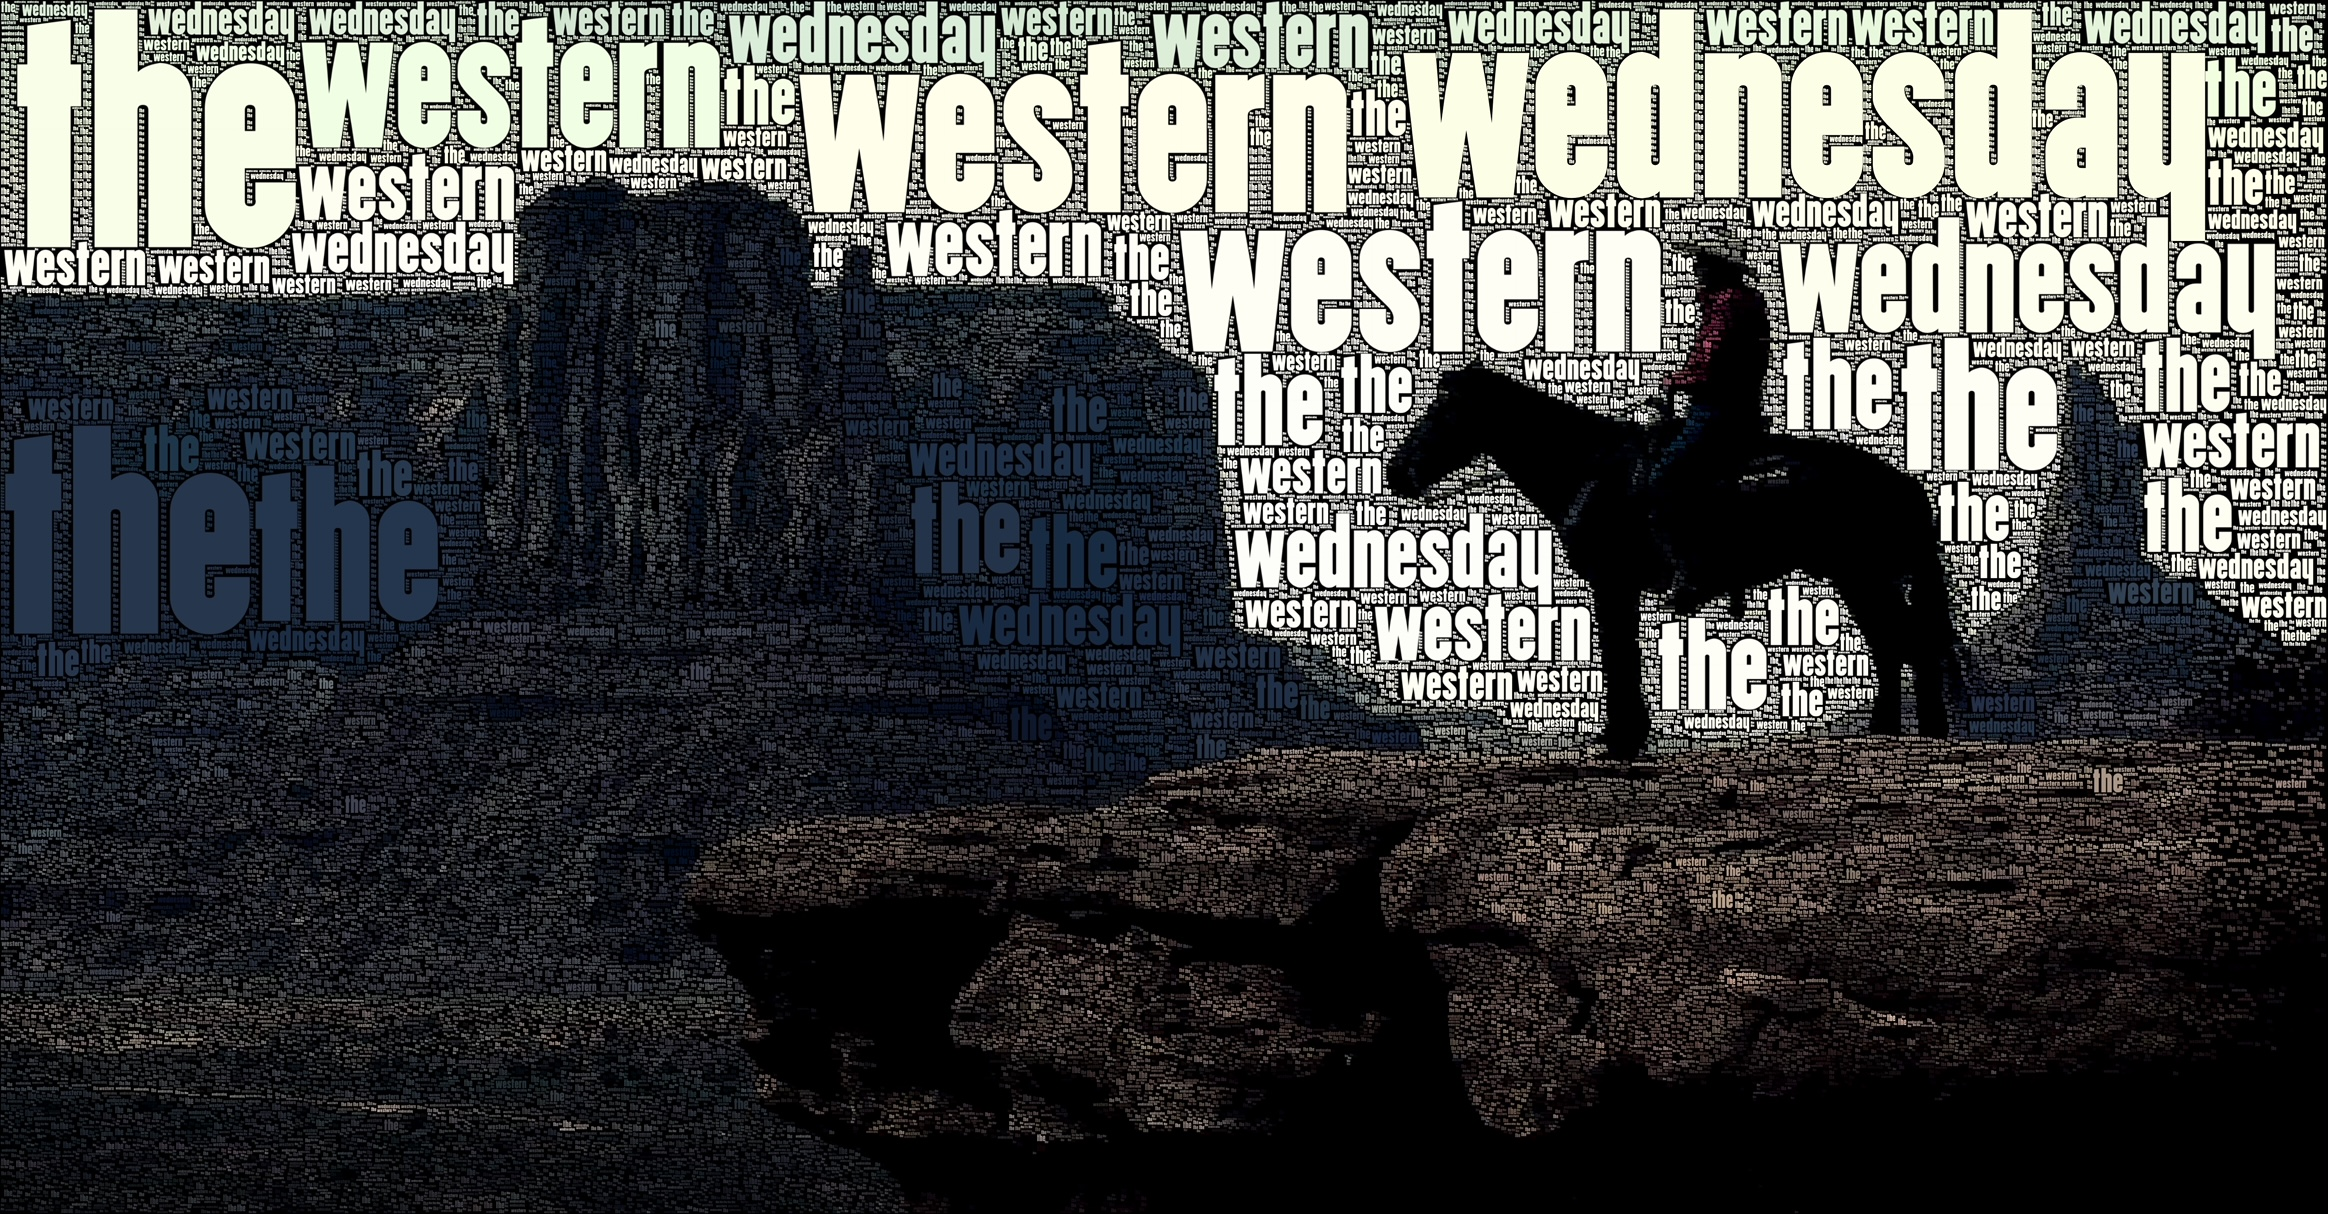 The Wednesday Western -18/11/2020